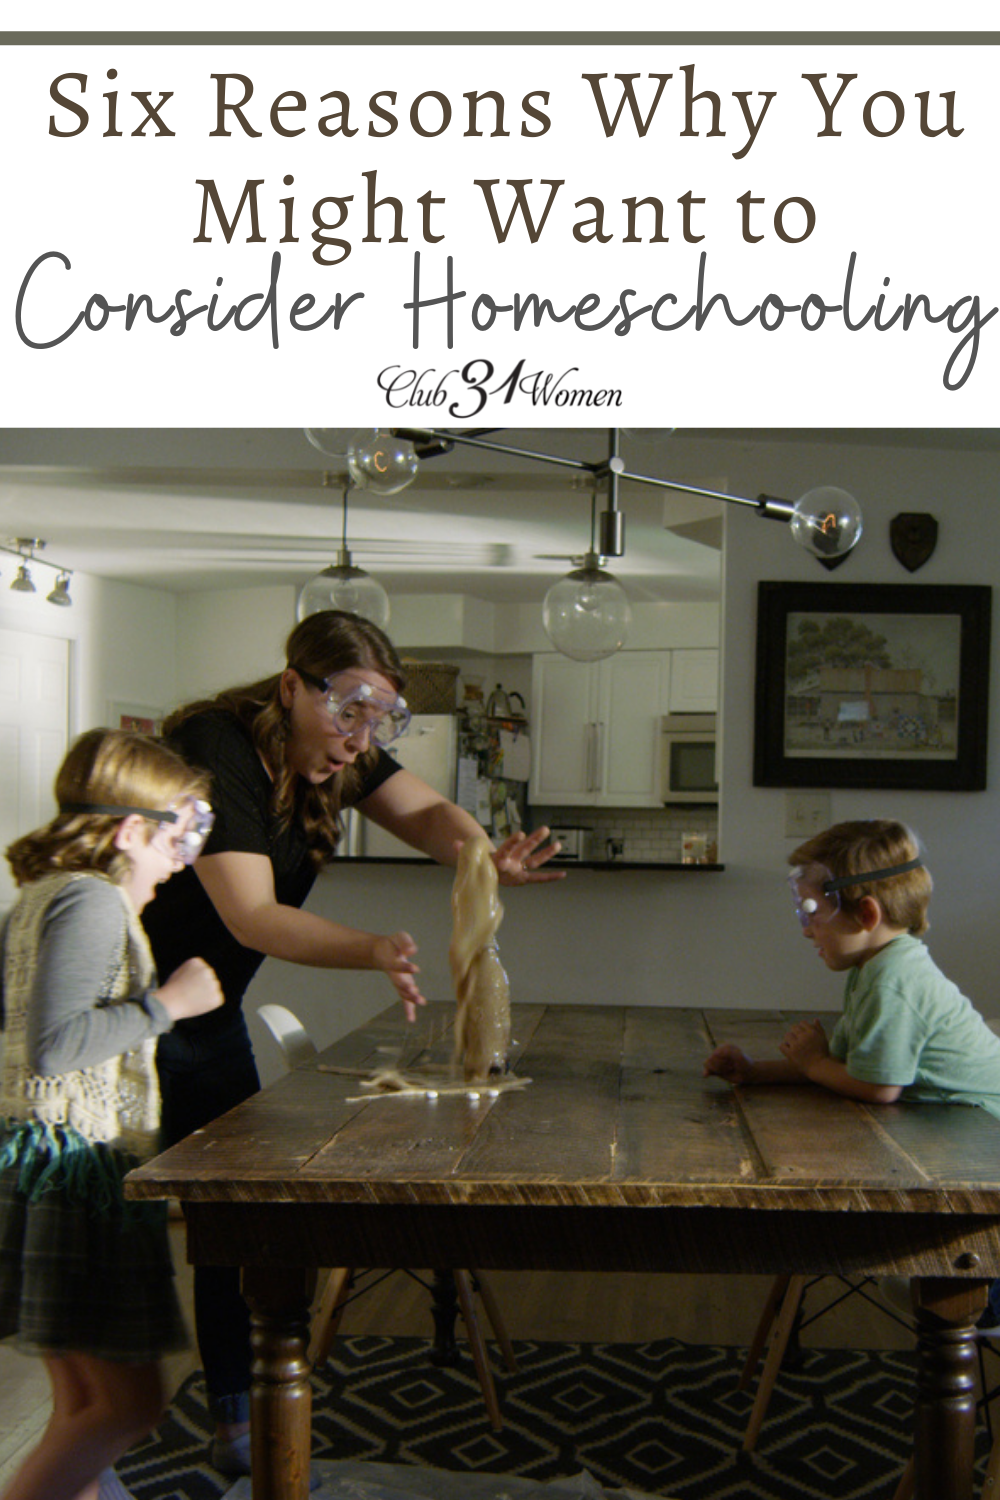 If you are wondering - or doubting - if you're the homeschooling type, here are some things to consider before making a final decision. via @Club31Women